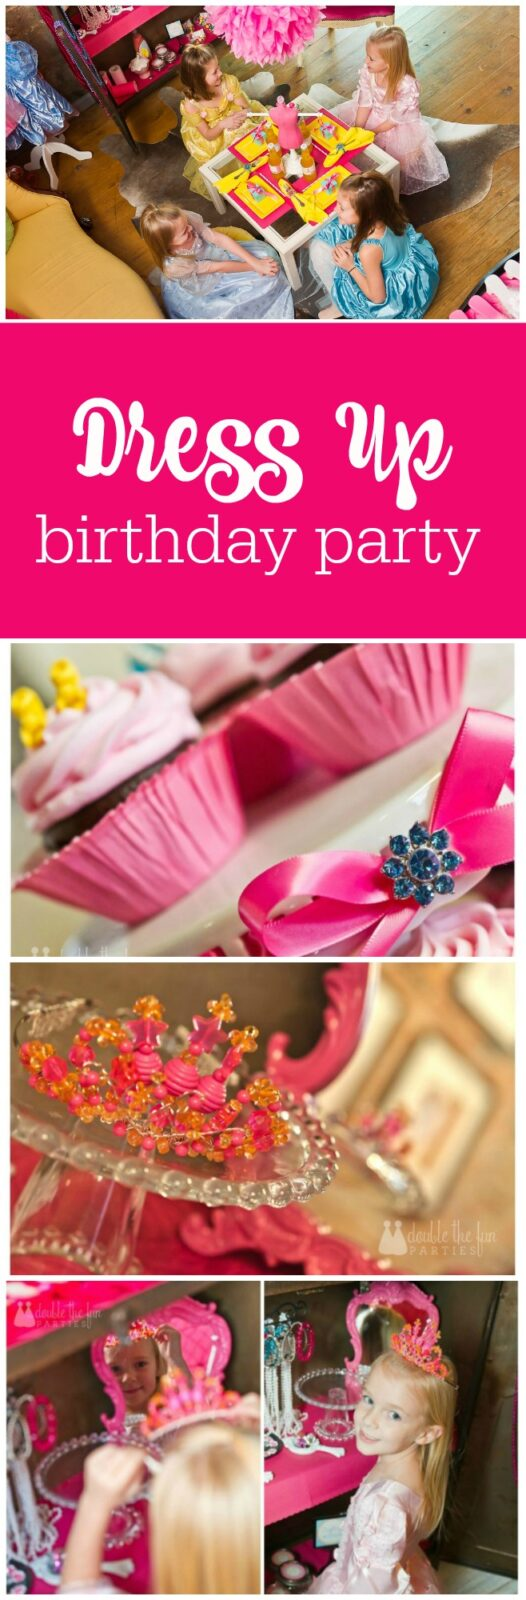 Dress up birthday party by The Party Teacher